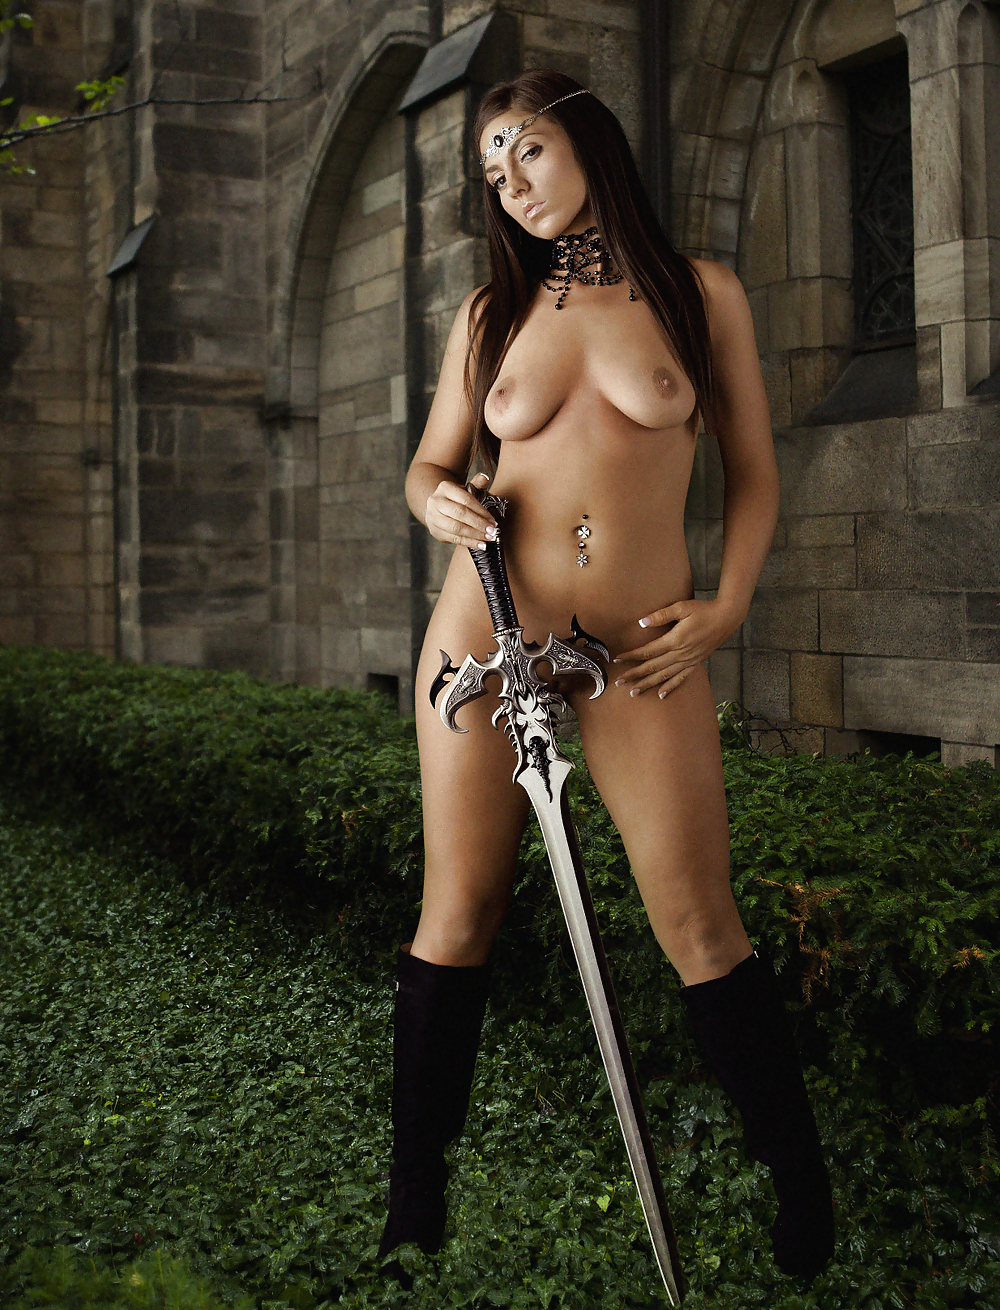 naked-women-with-swords-hd-palin-porn-whole-video